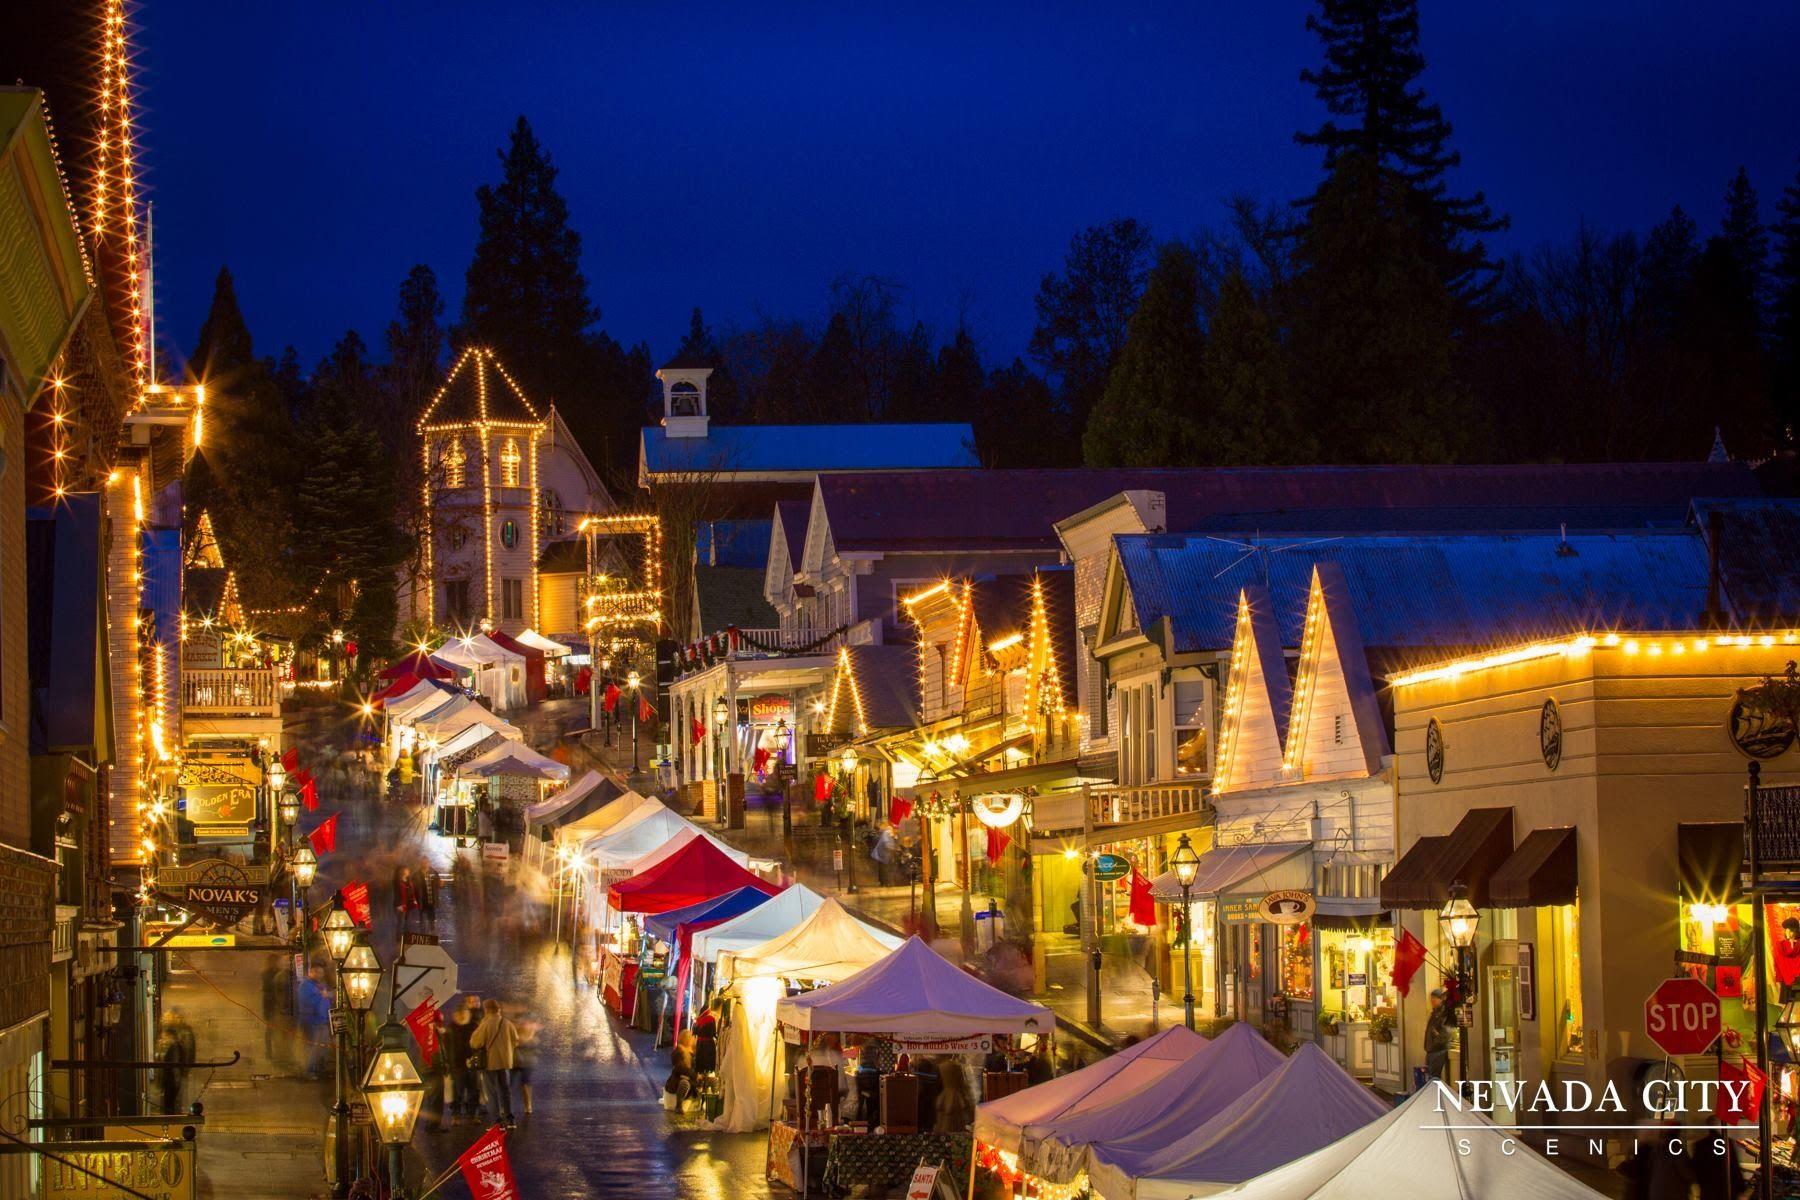 Victorian Christmas Downtown Nevada City Ca Dec 2015 Nevada City Nevada City California Victorian Christmas